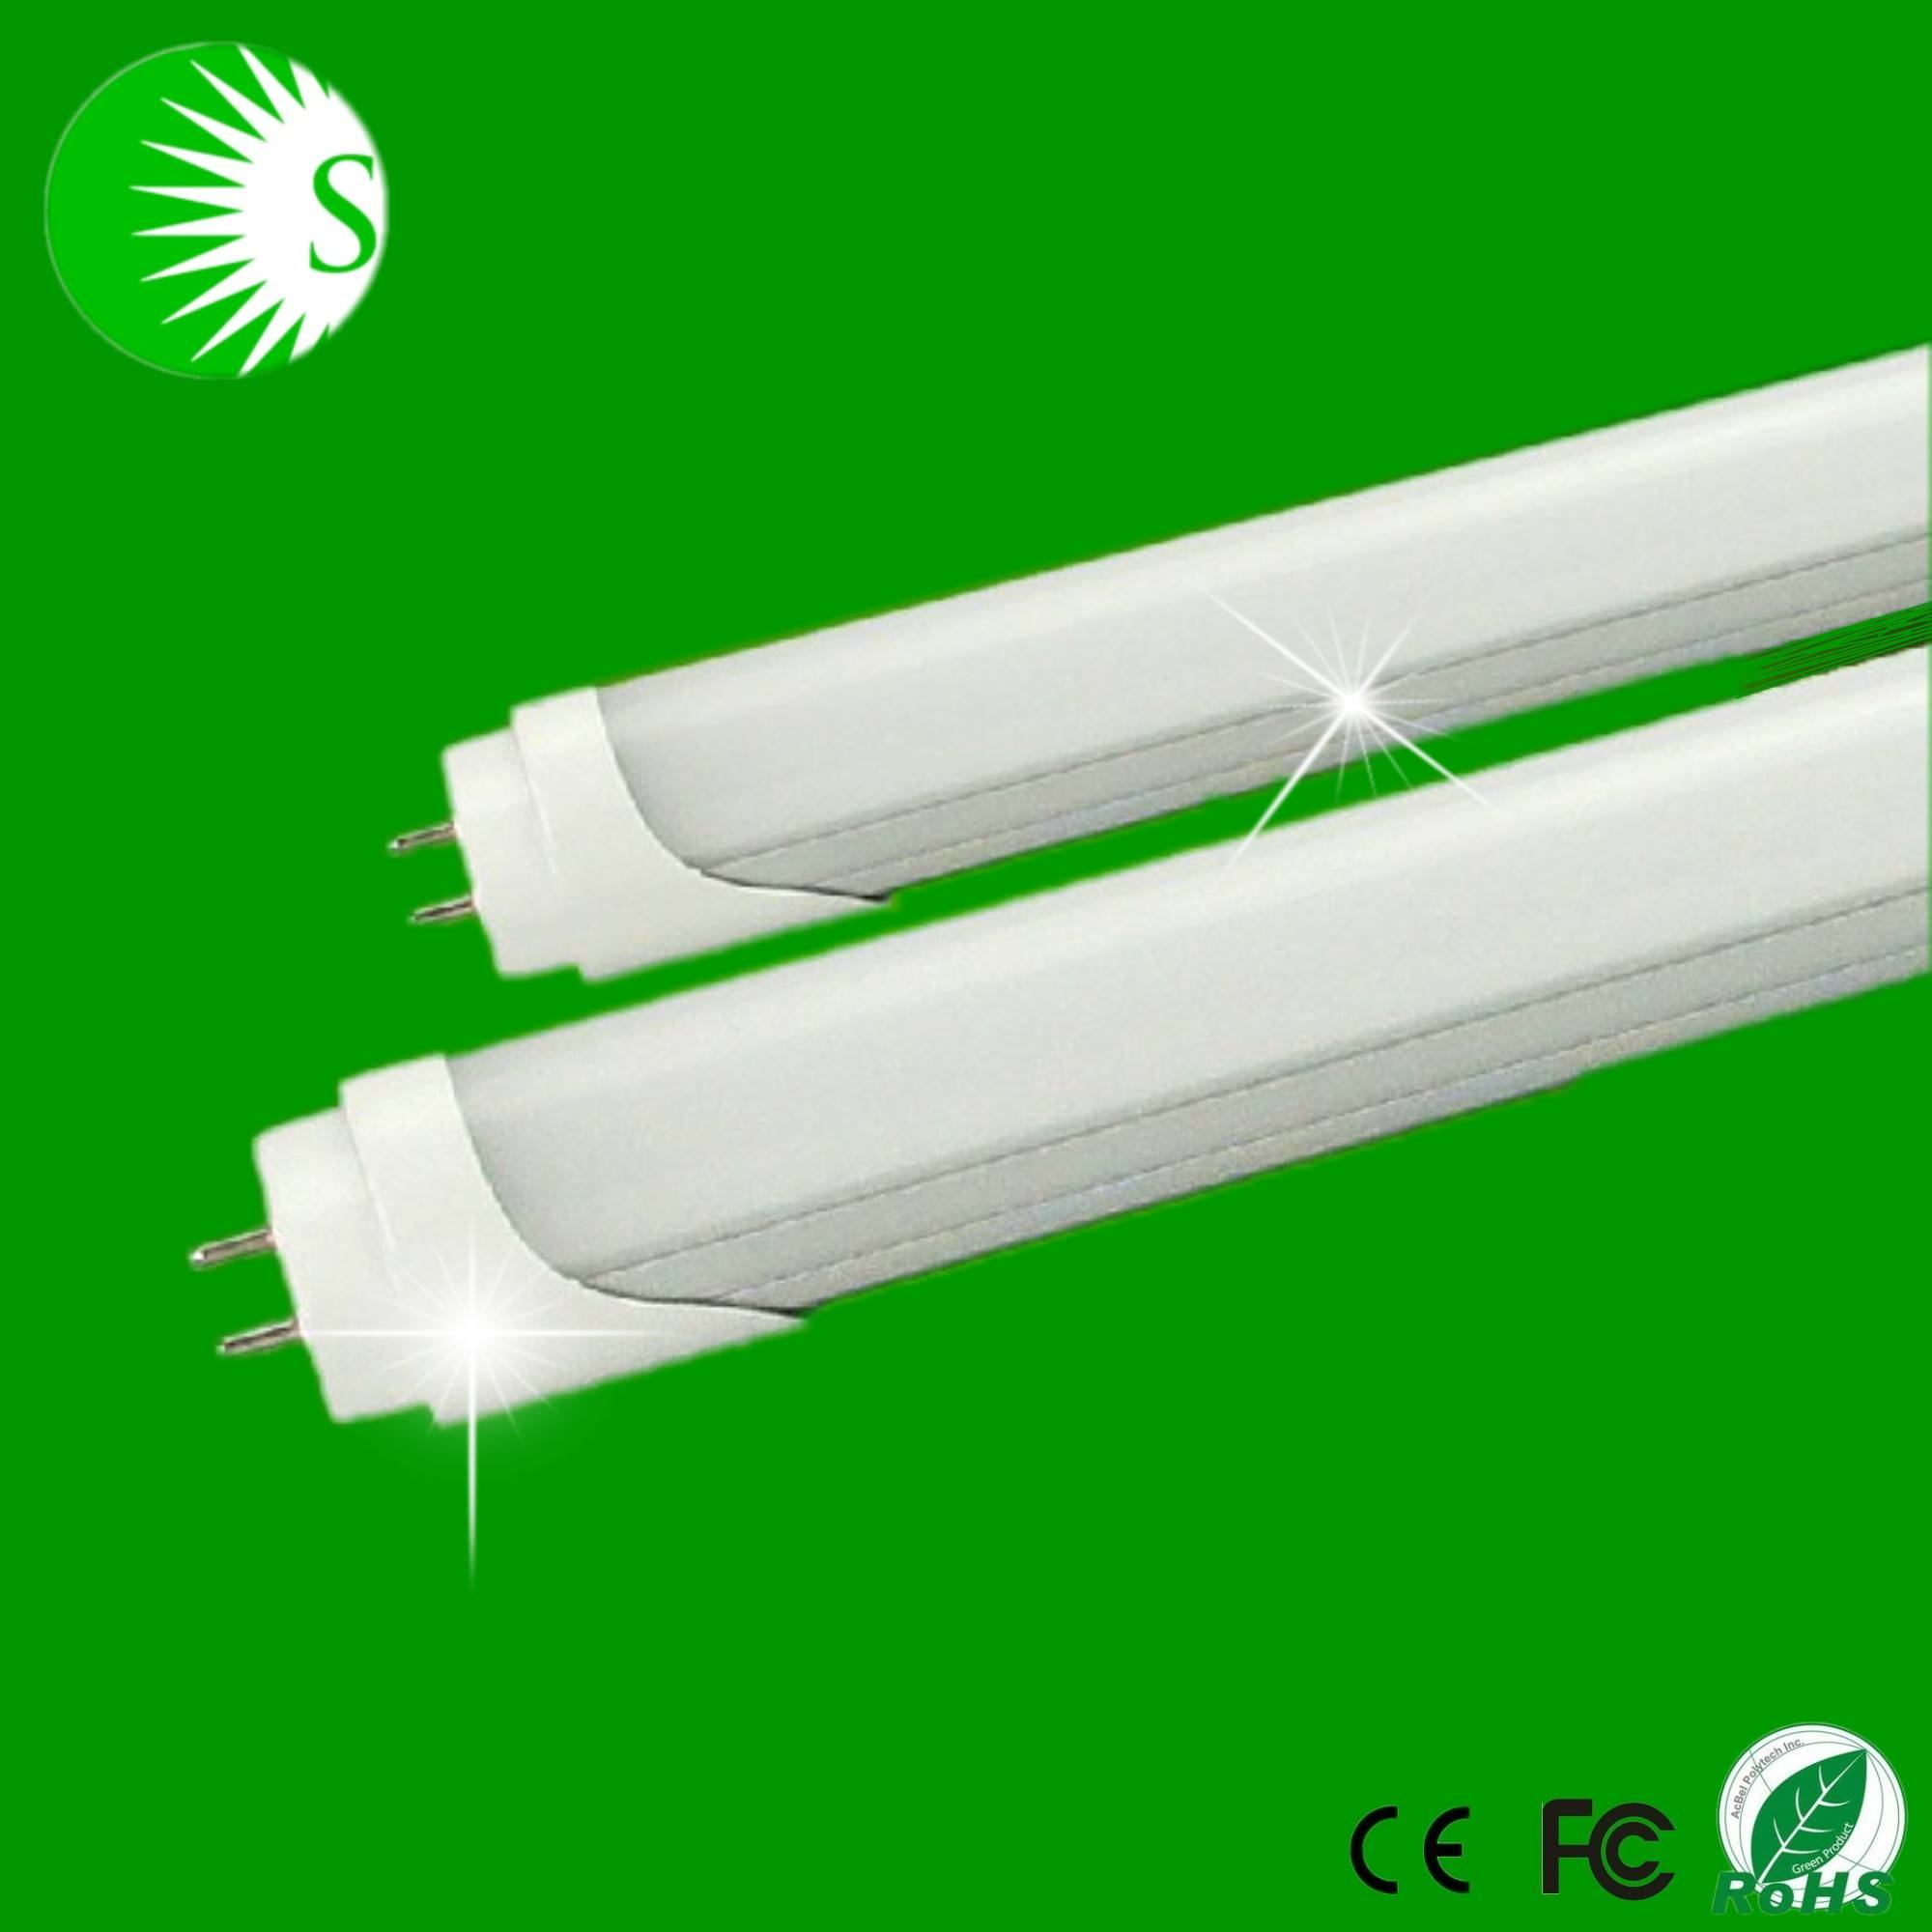 4w 6w 9w 12w 18w 0.6m 0.9m 1.2m Epistar 2835 led chip light wide voltage 85-265v led tube light t8